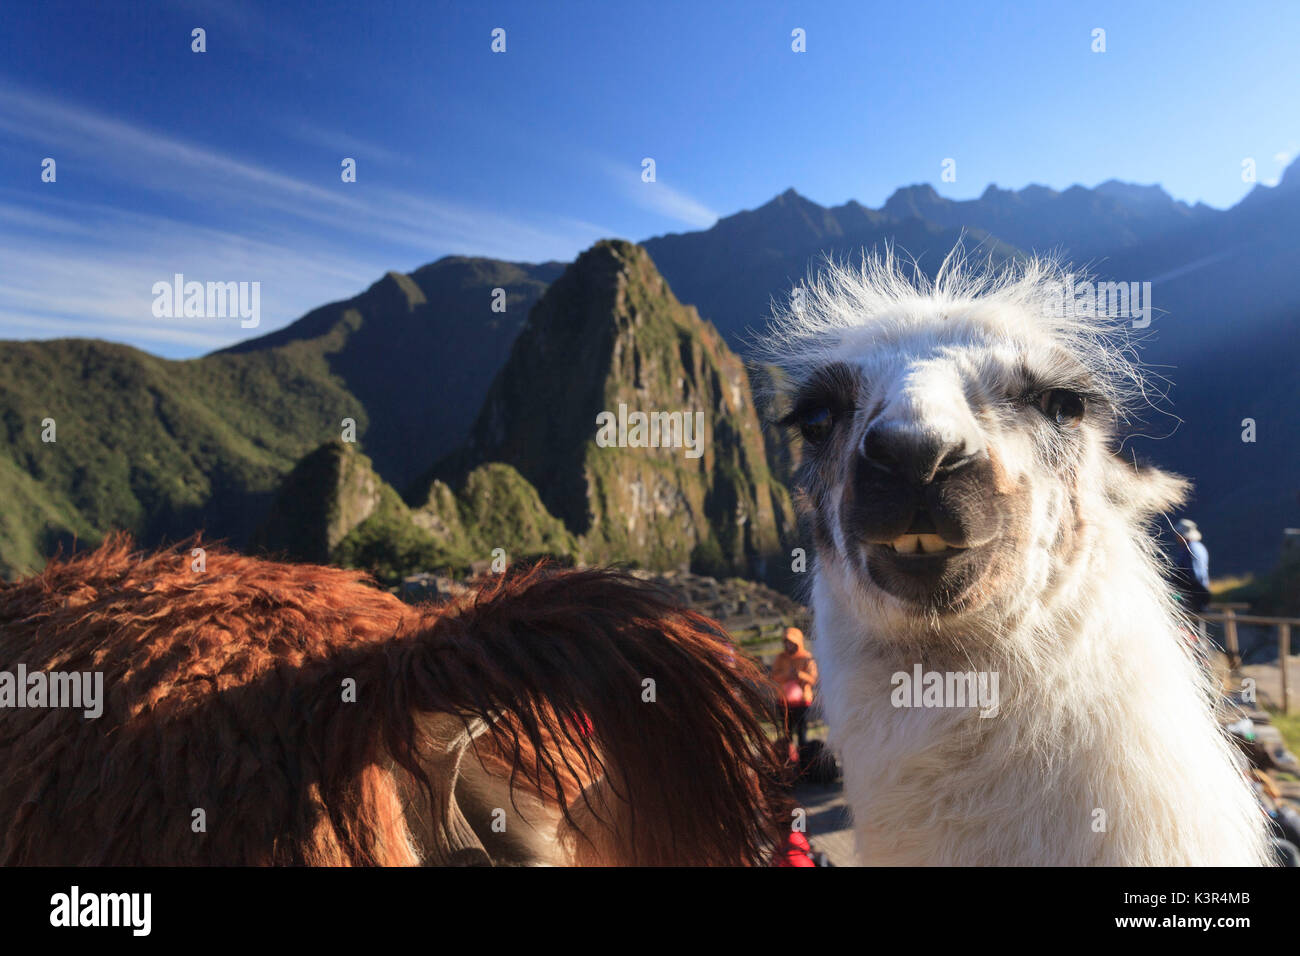 Llama at the iconic archeological site of Machu Picchu in the Cusco Region, Urubamba Province, Machupicchu District, Peru, South America - Stock Image